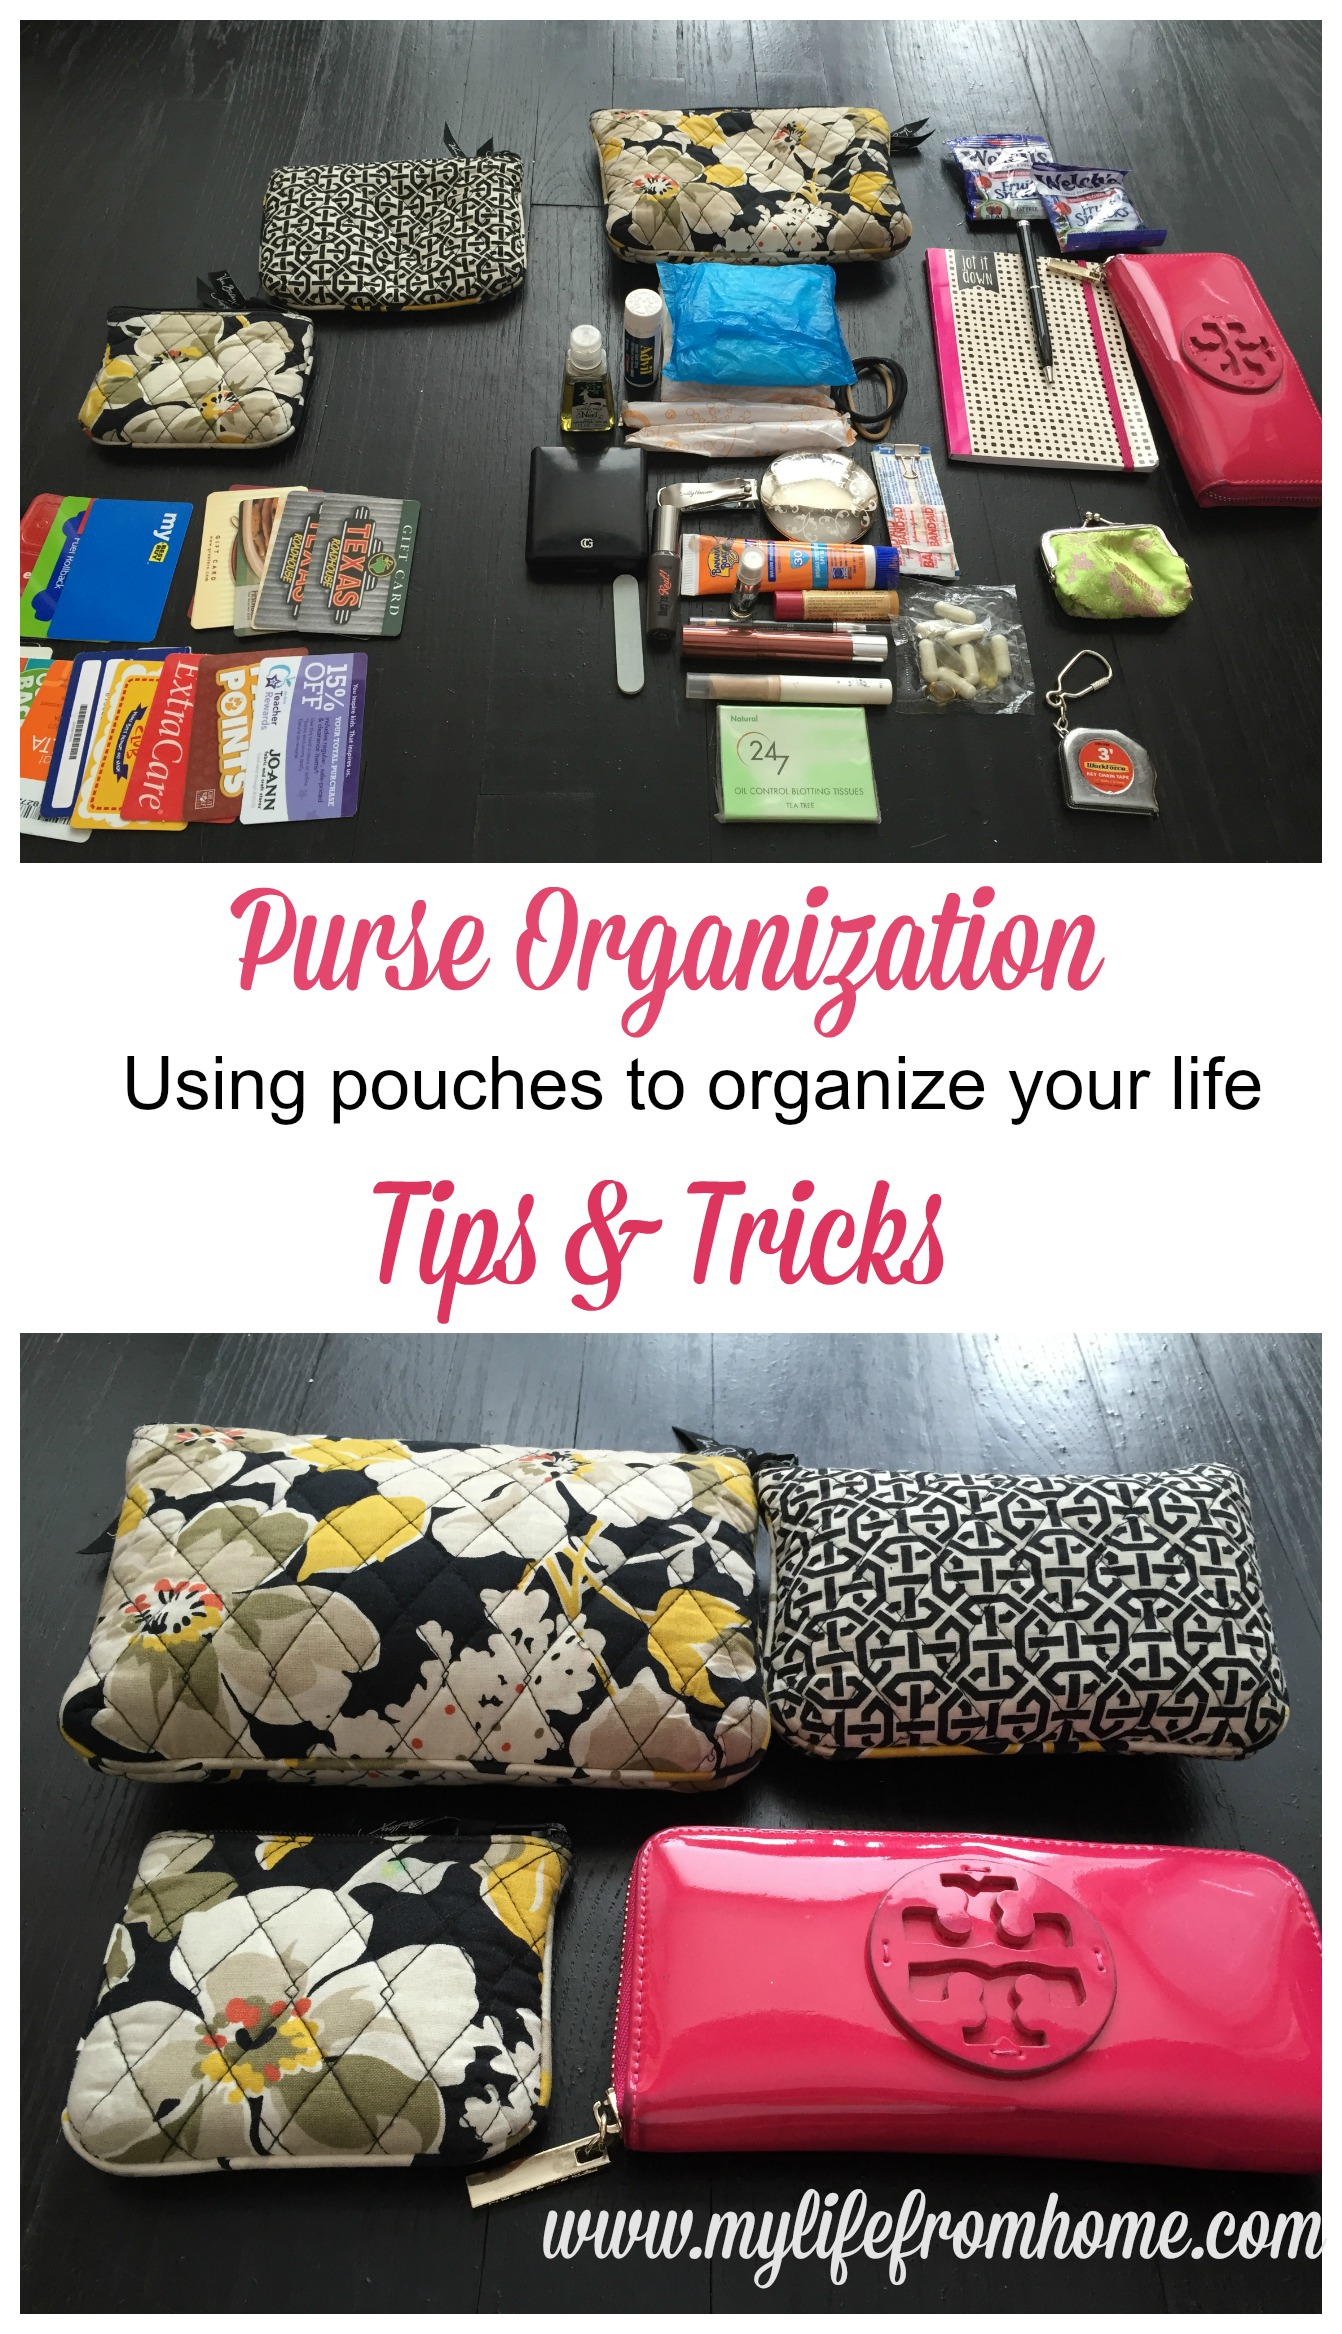 Purse Organization Tips & Tricks Using Pouches by www.mylifefromhome.com